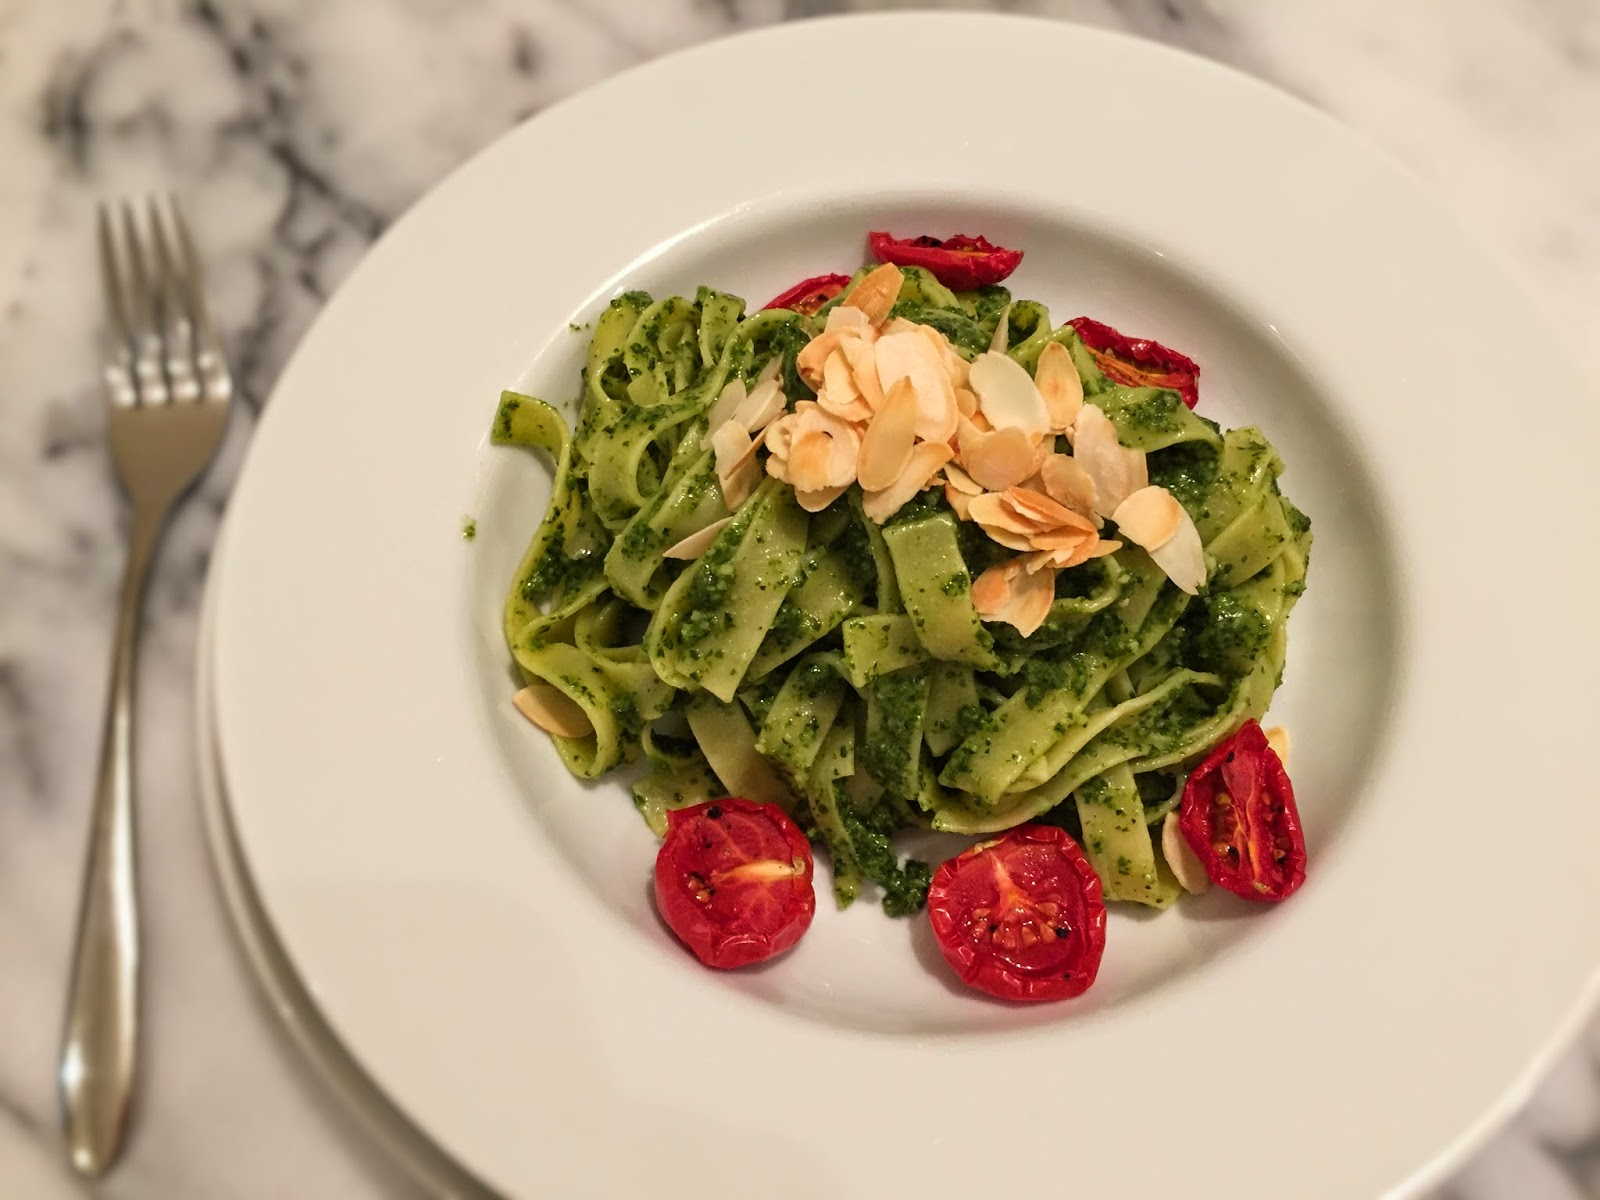 Fettuccine with kale and almond pesto